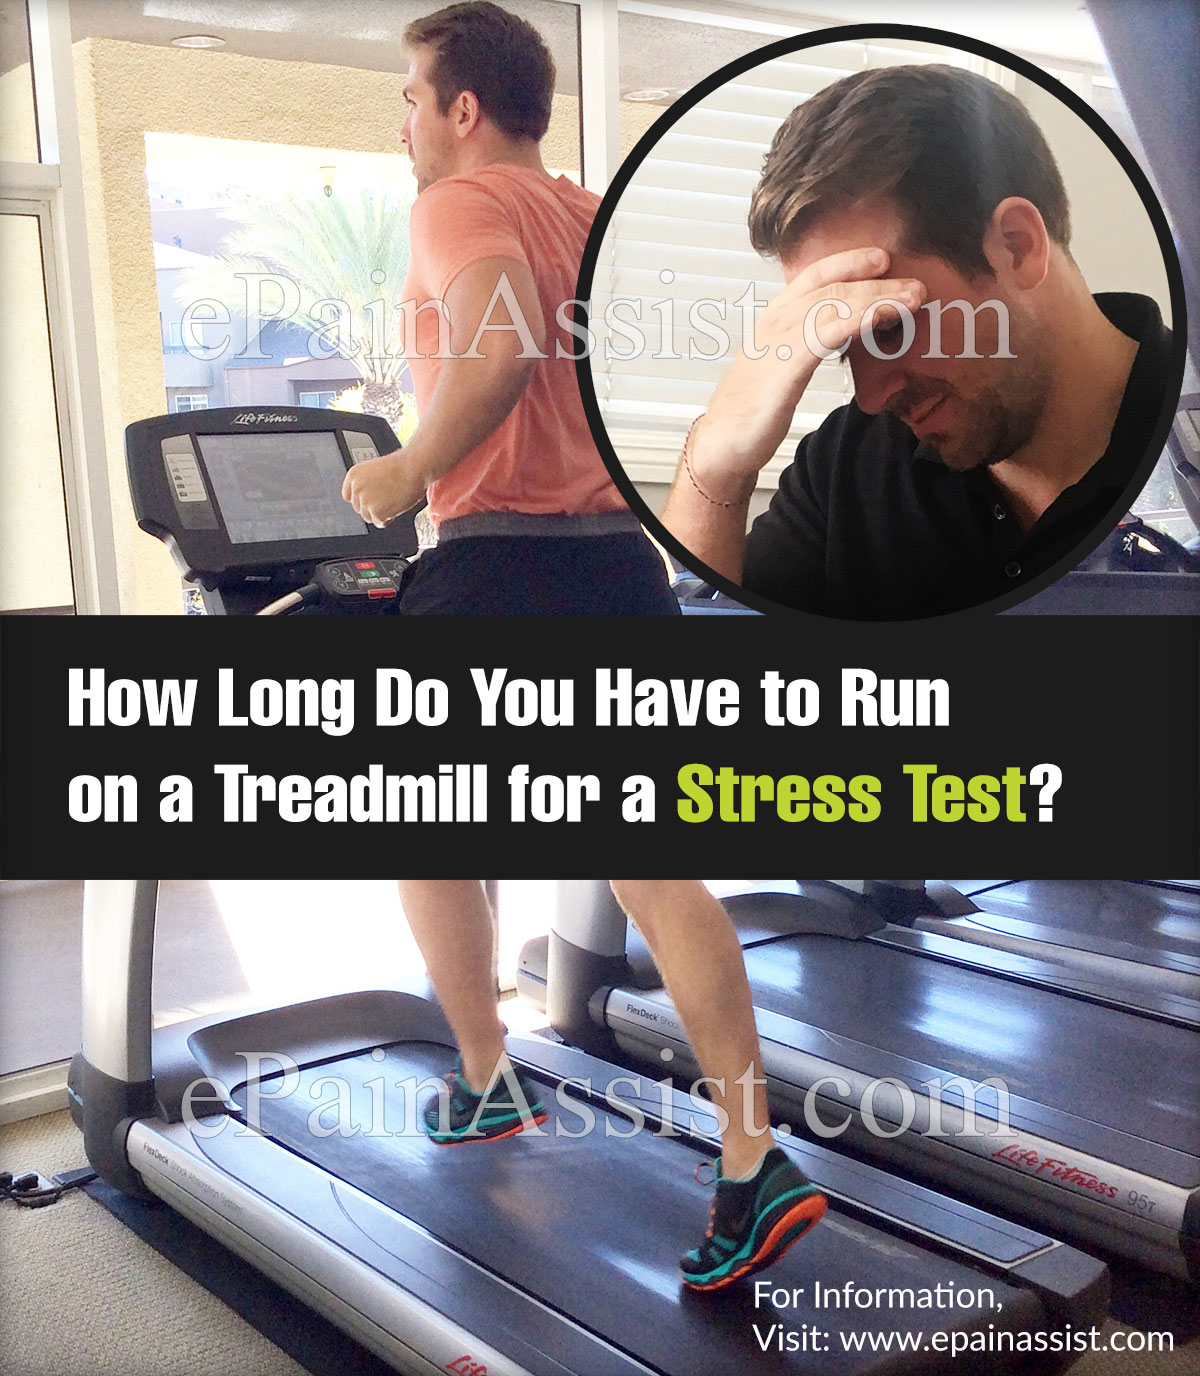 Why Is Stress Test Performed & How Long Do You Have To Run